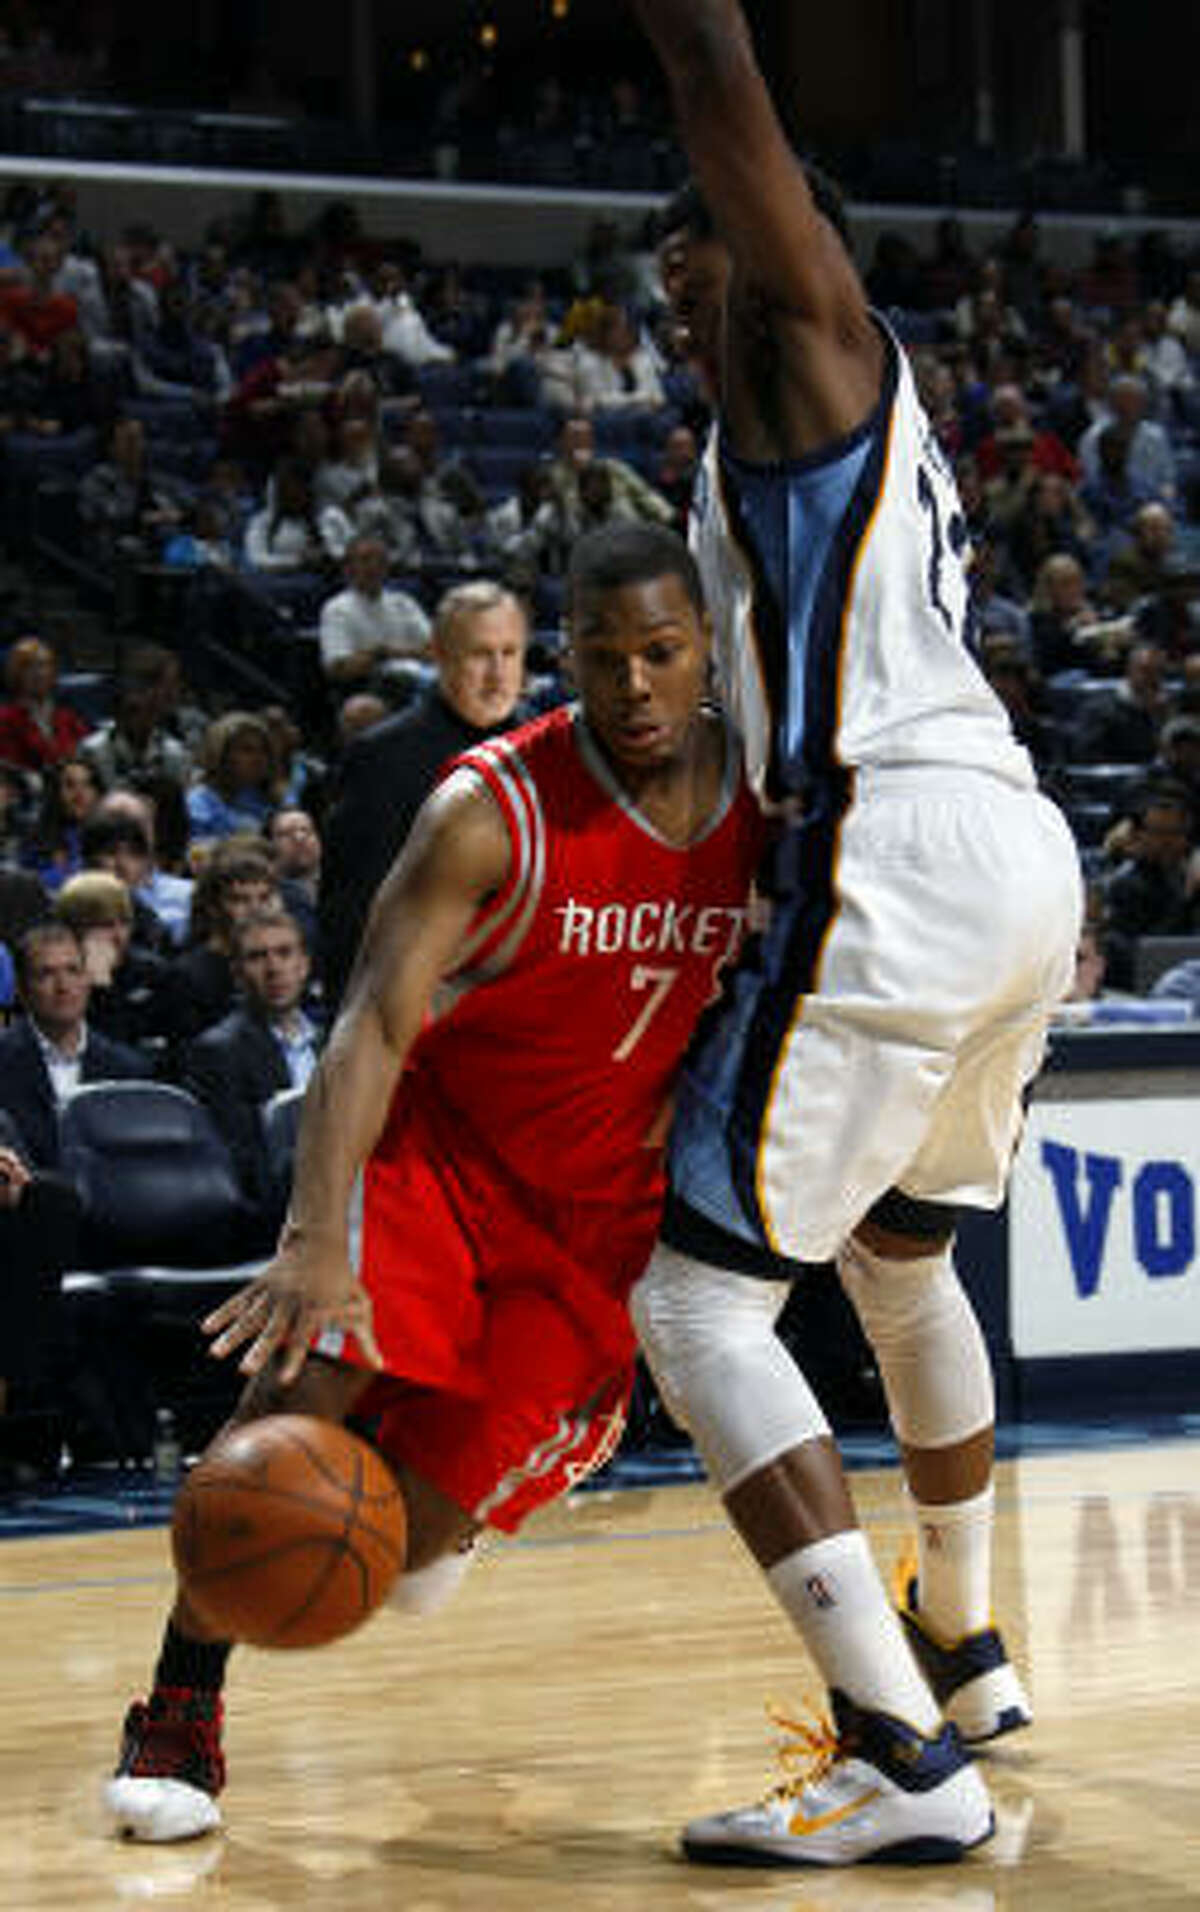 Rockets guard Kyle Lowry had 28 points and 12 assists in the victory Friday night.